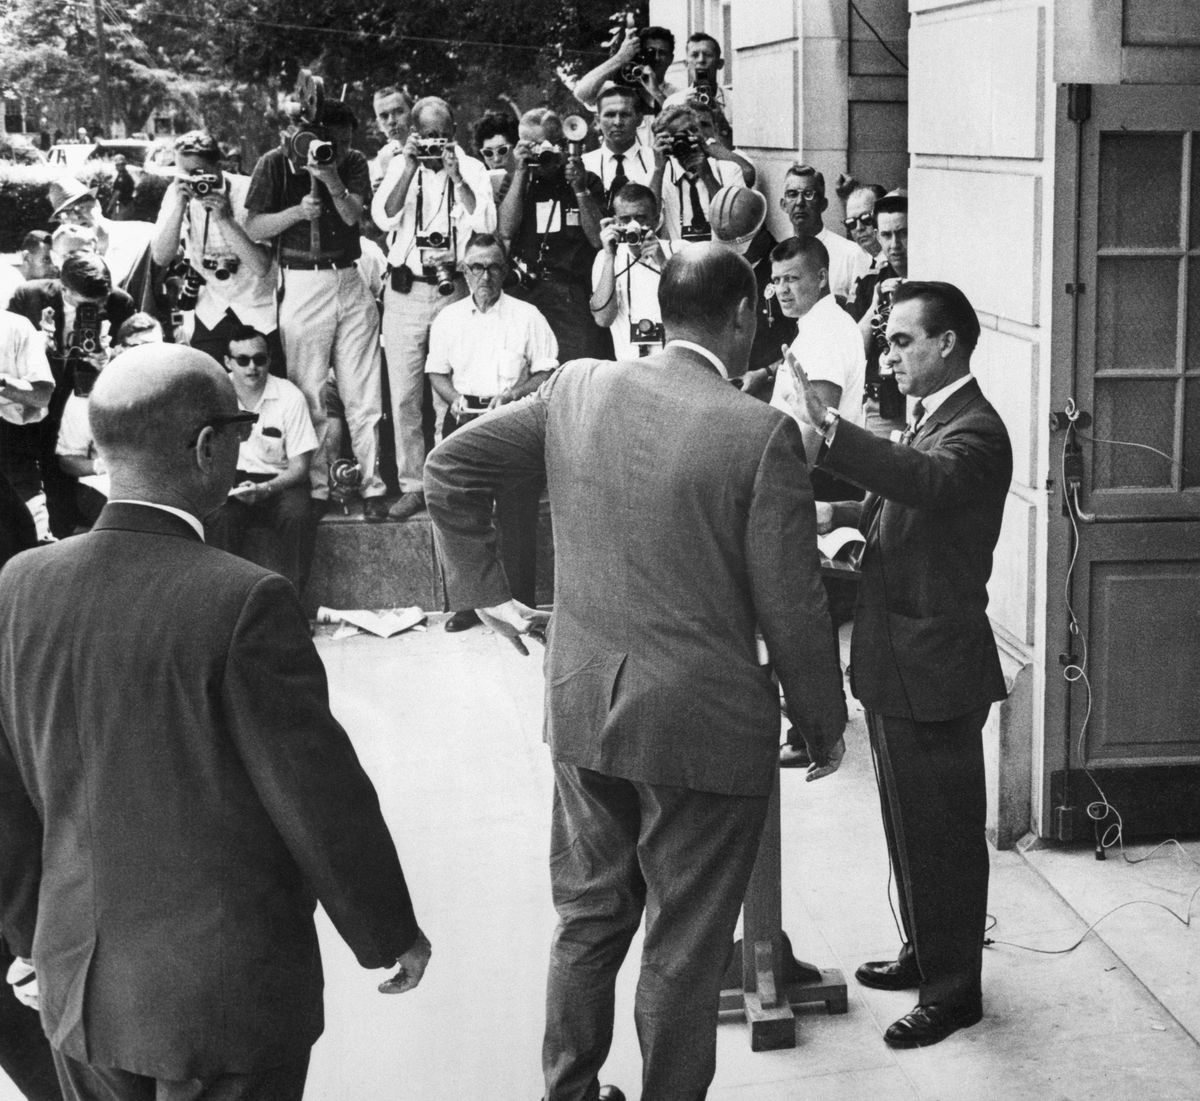 Jerry Falwell Sr. offered a platform to arch-segregationist George Wallace, shown here blocking a door at the University of Alabama.